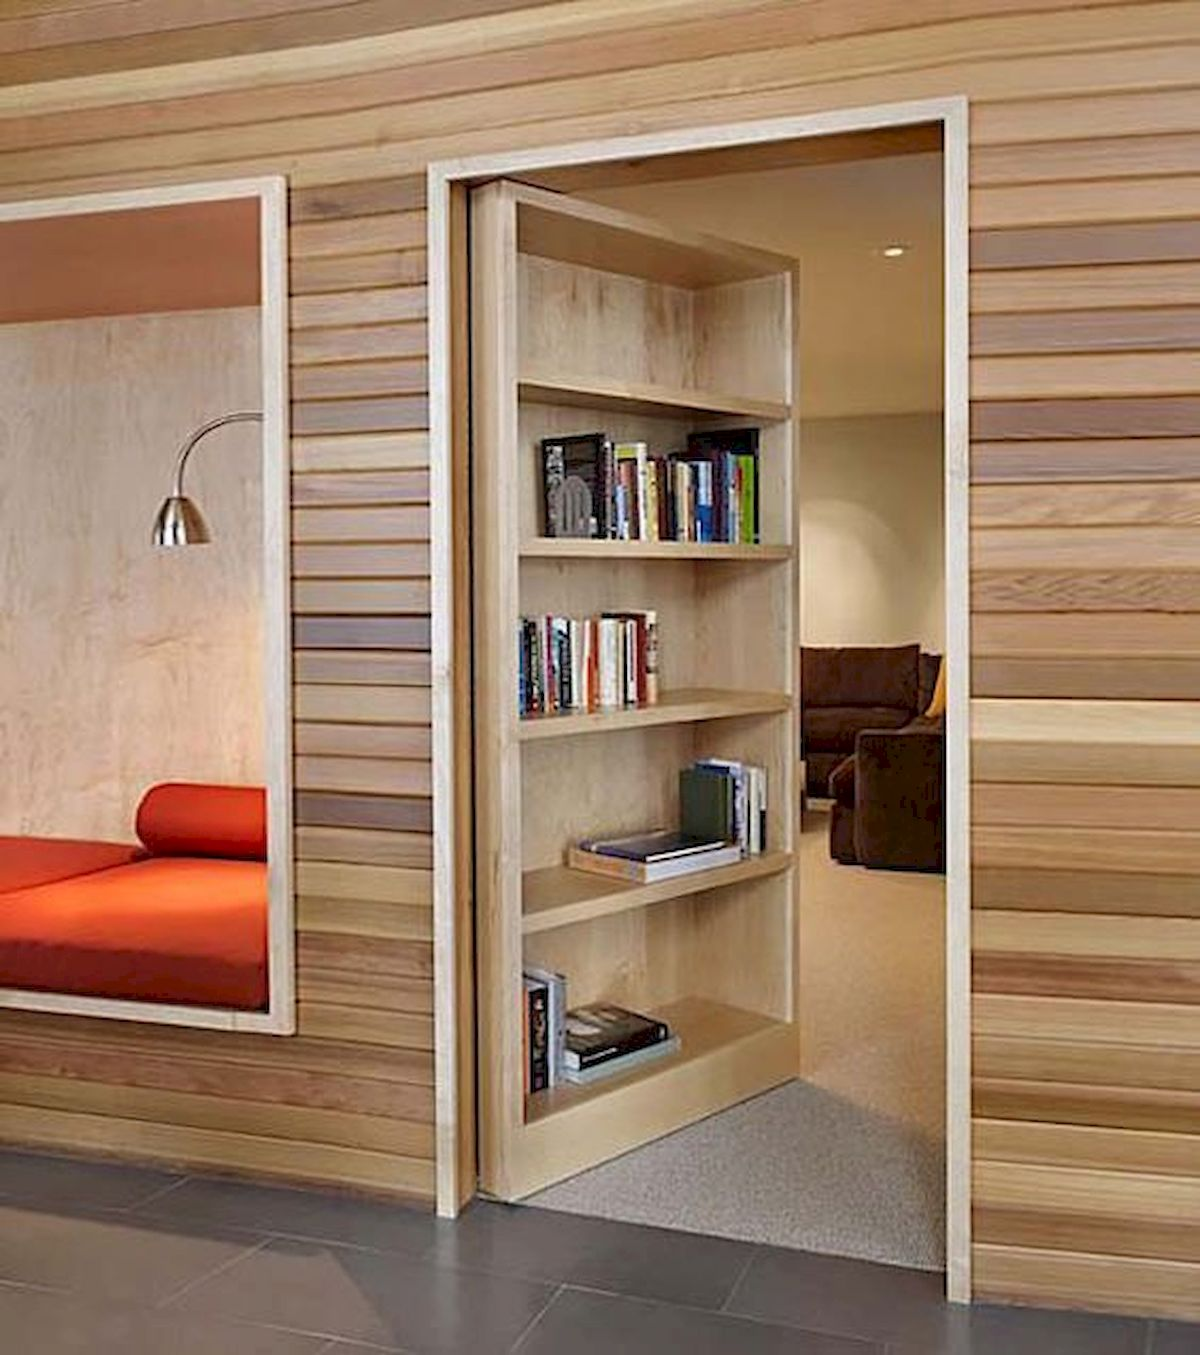 27 Genius Secret Room Ideas and Design (24)